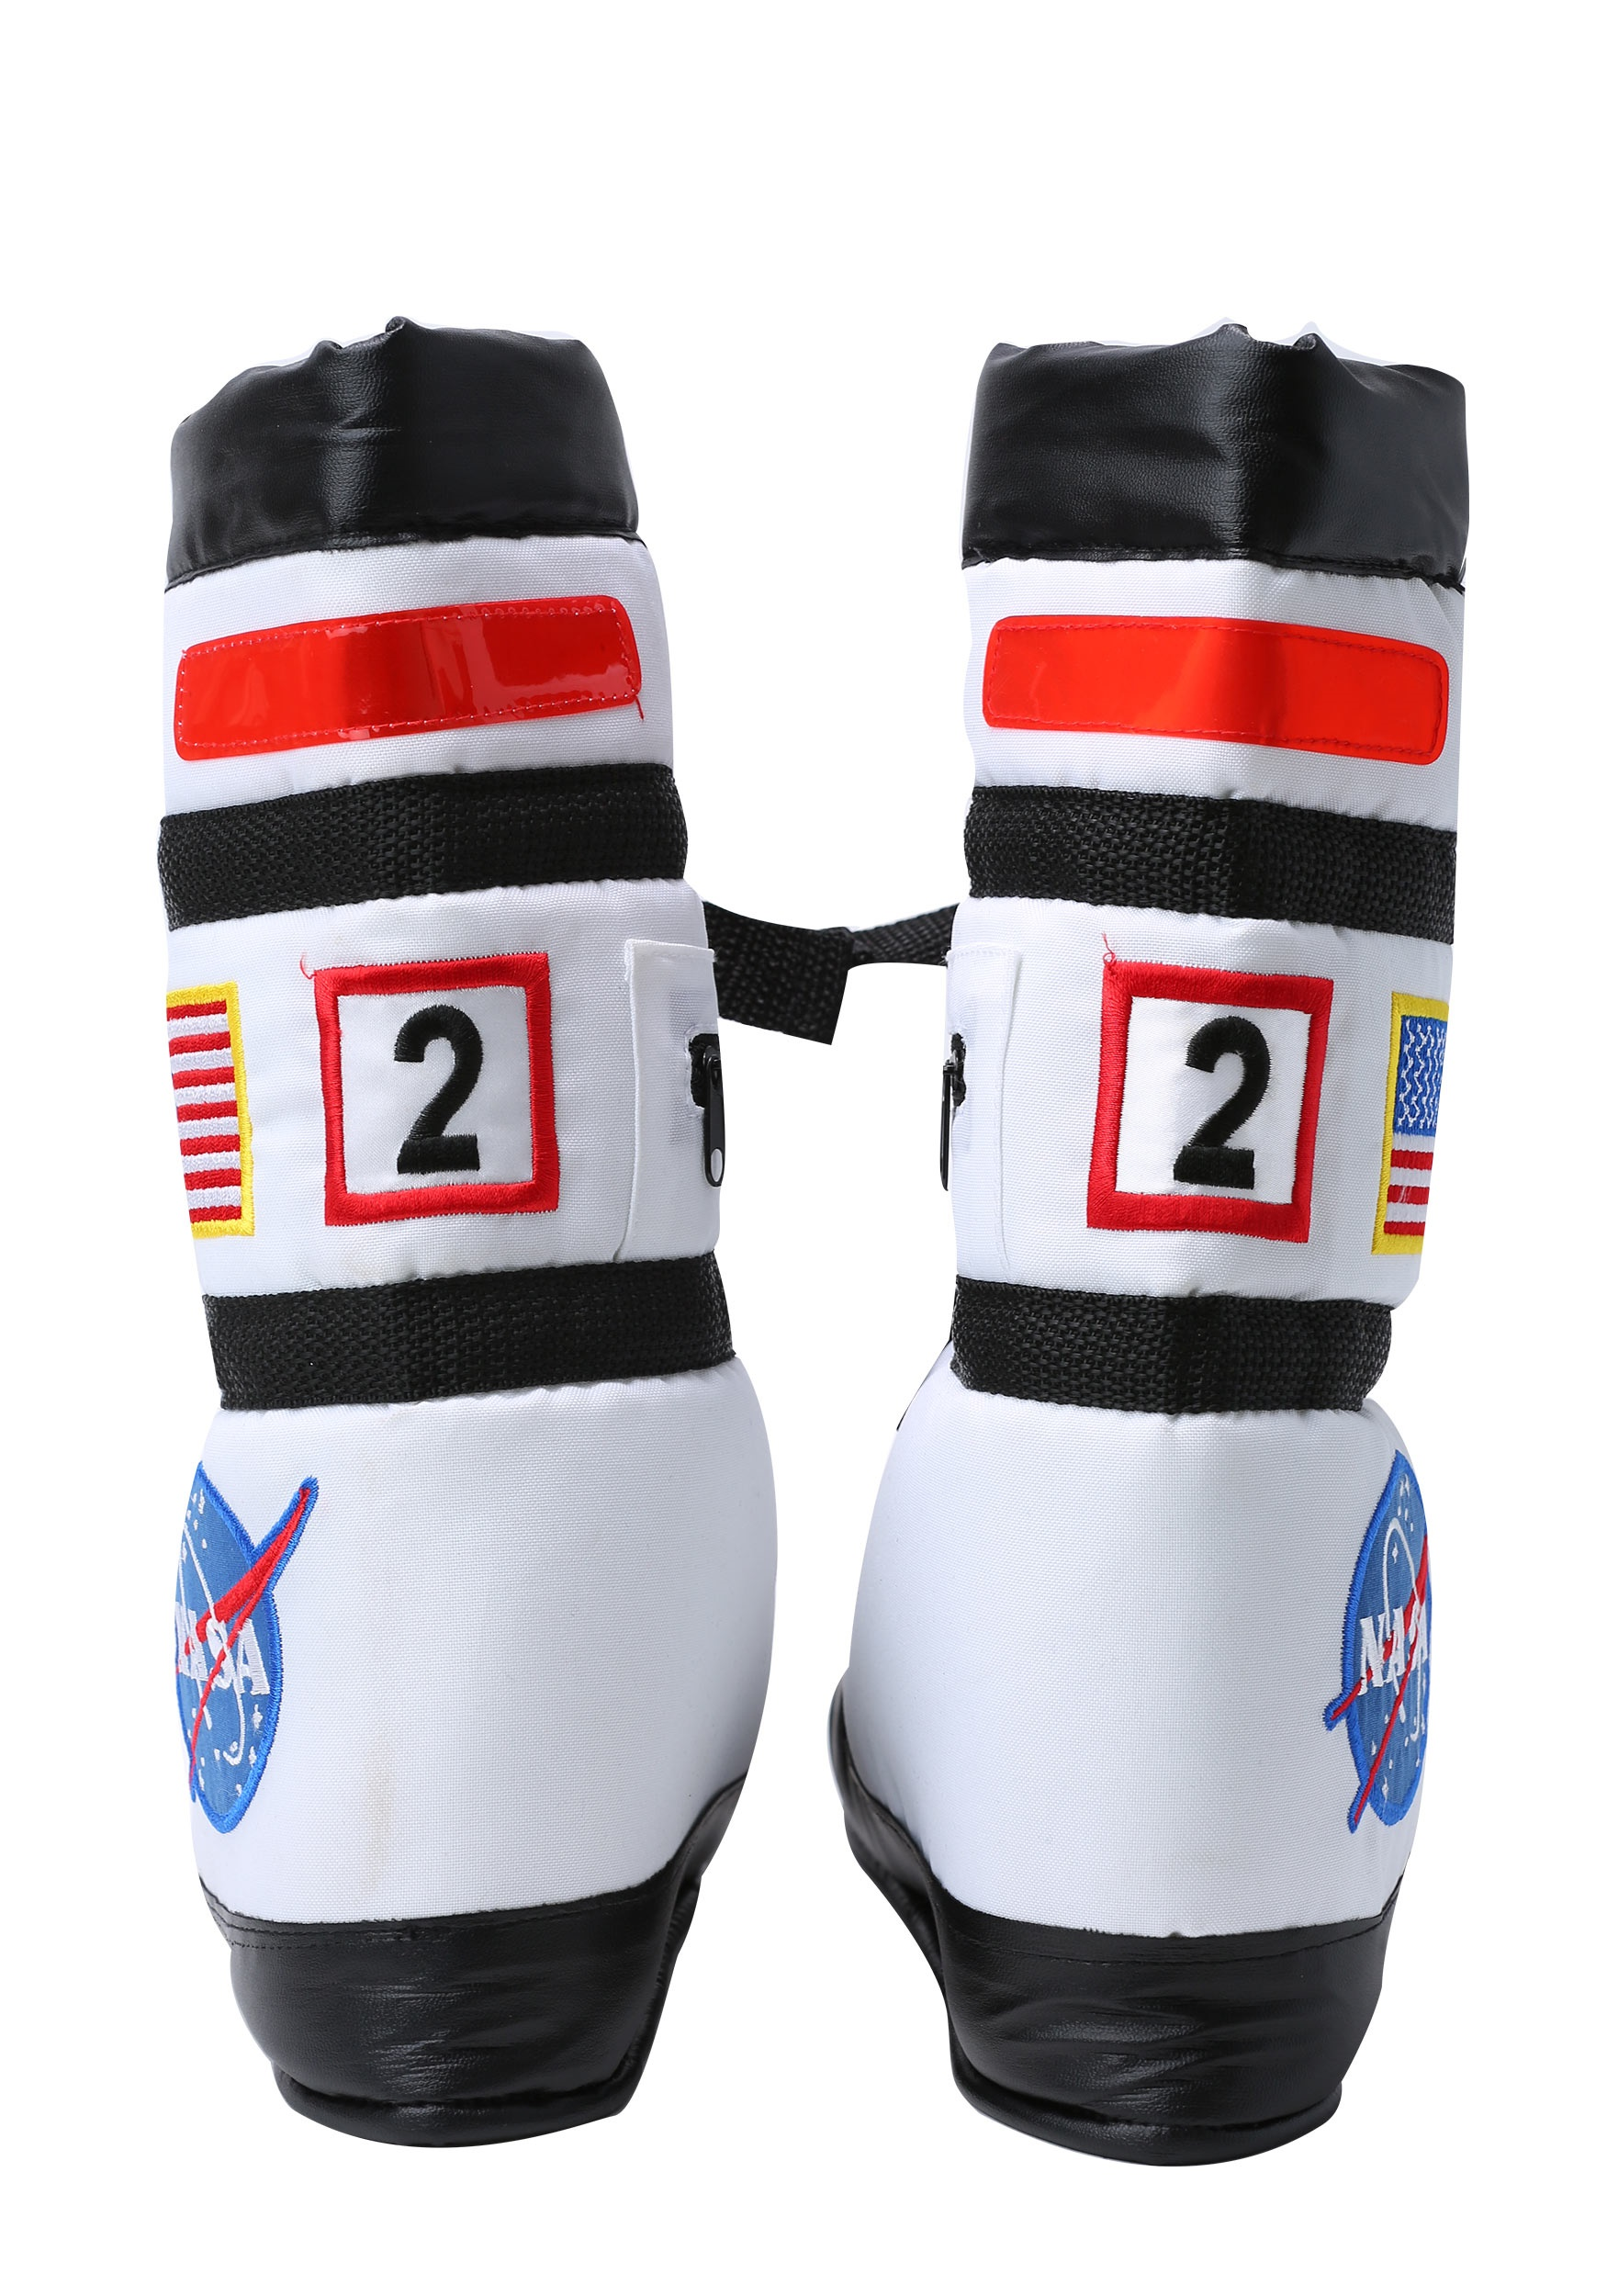 nasa astronaut shoes - photo #22